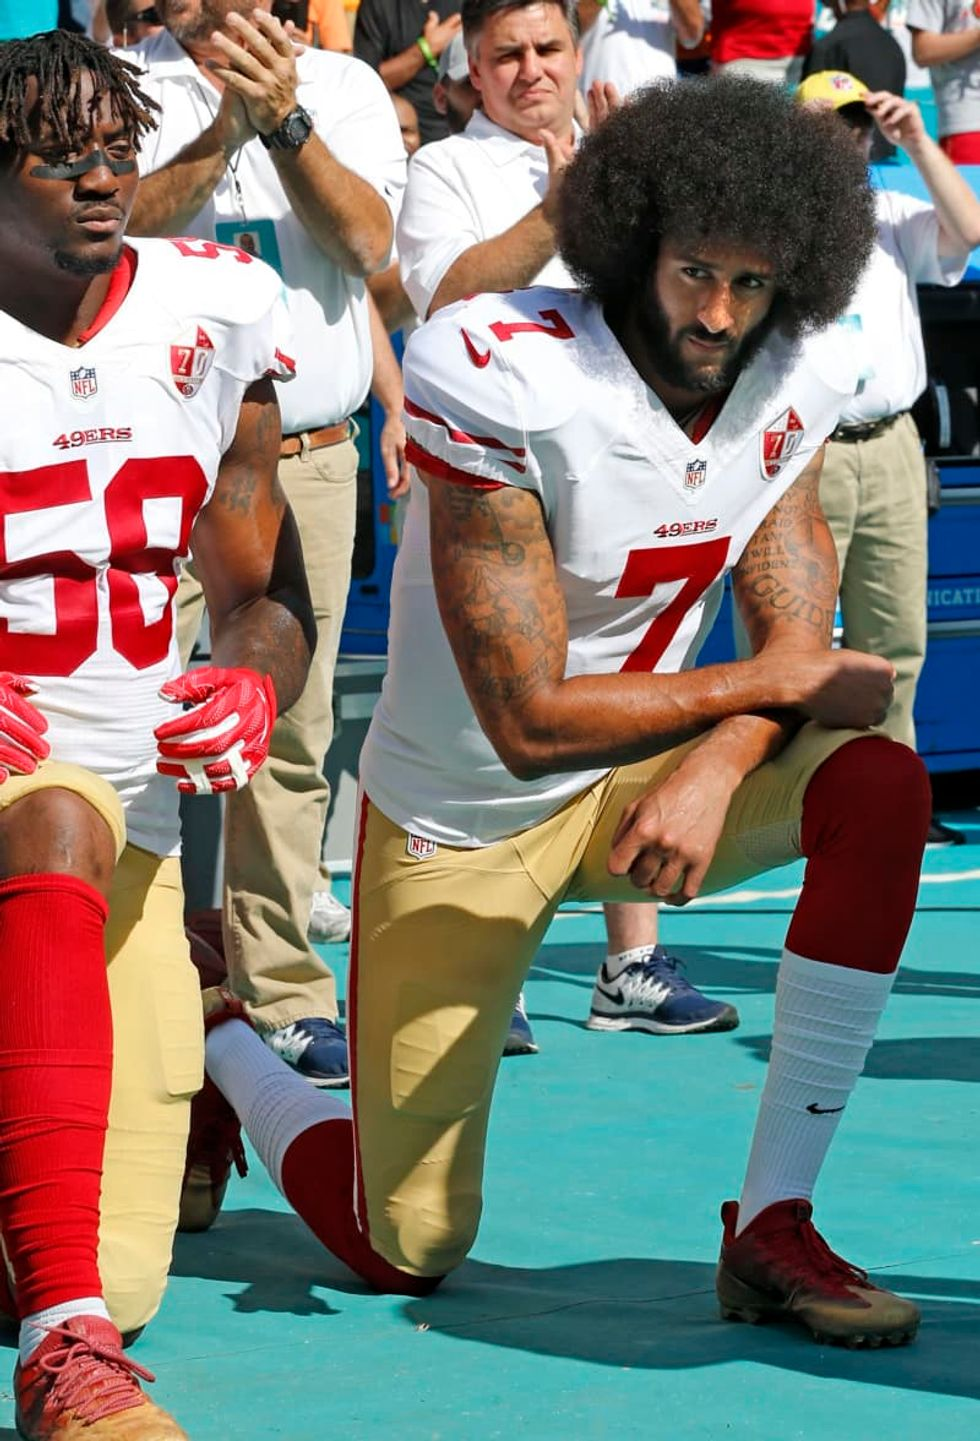 Sacramento hit with lawsuit over requirement that people stand for national anthem